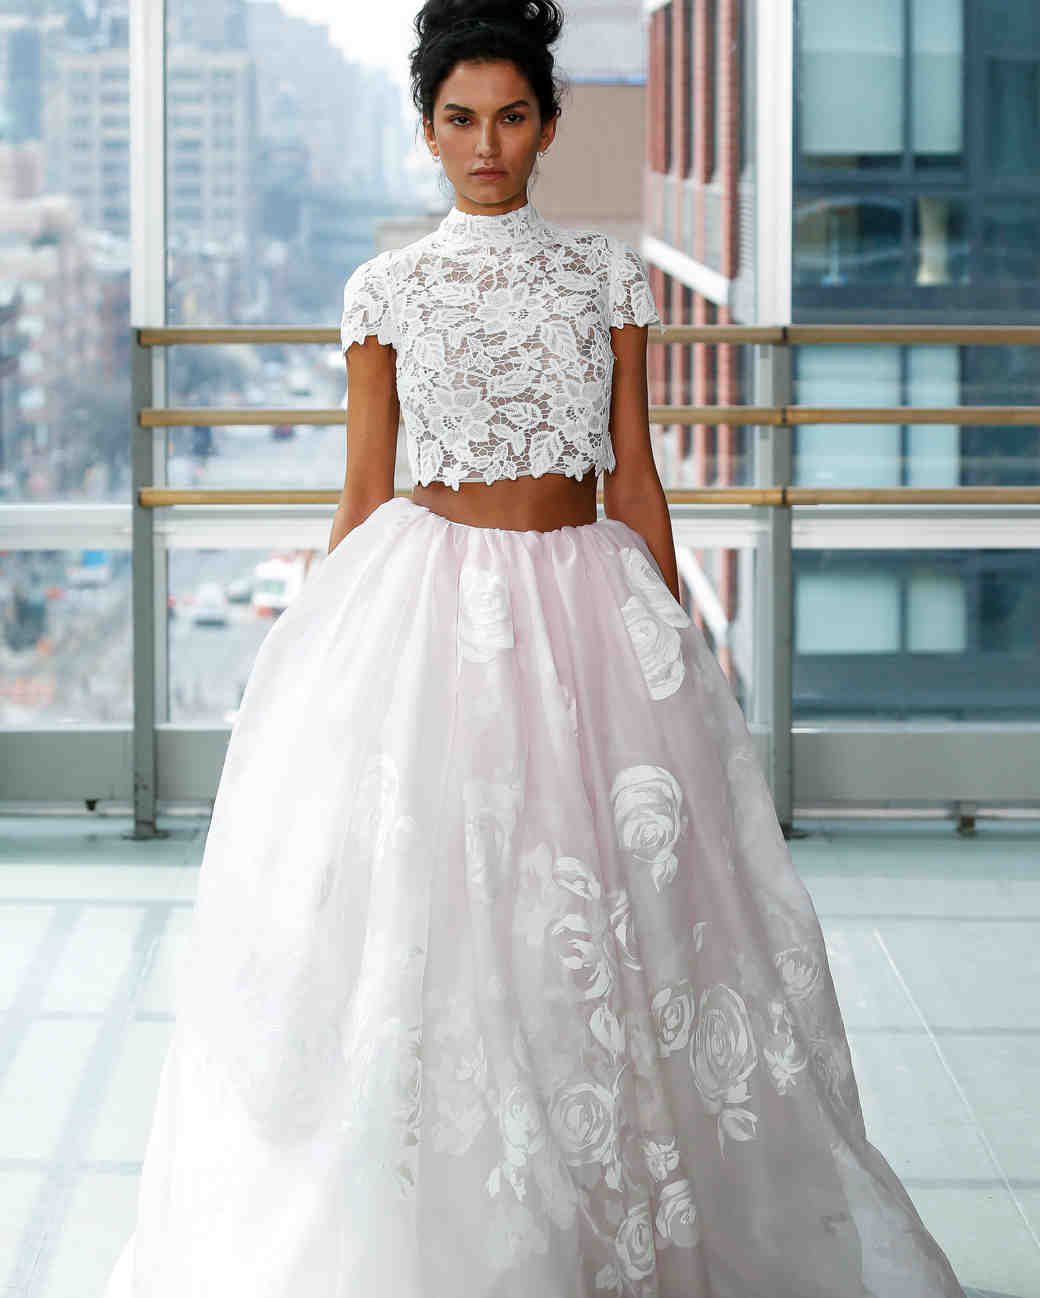 dress - Piece two Bridal wedding dress pictures video